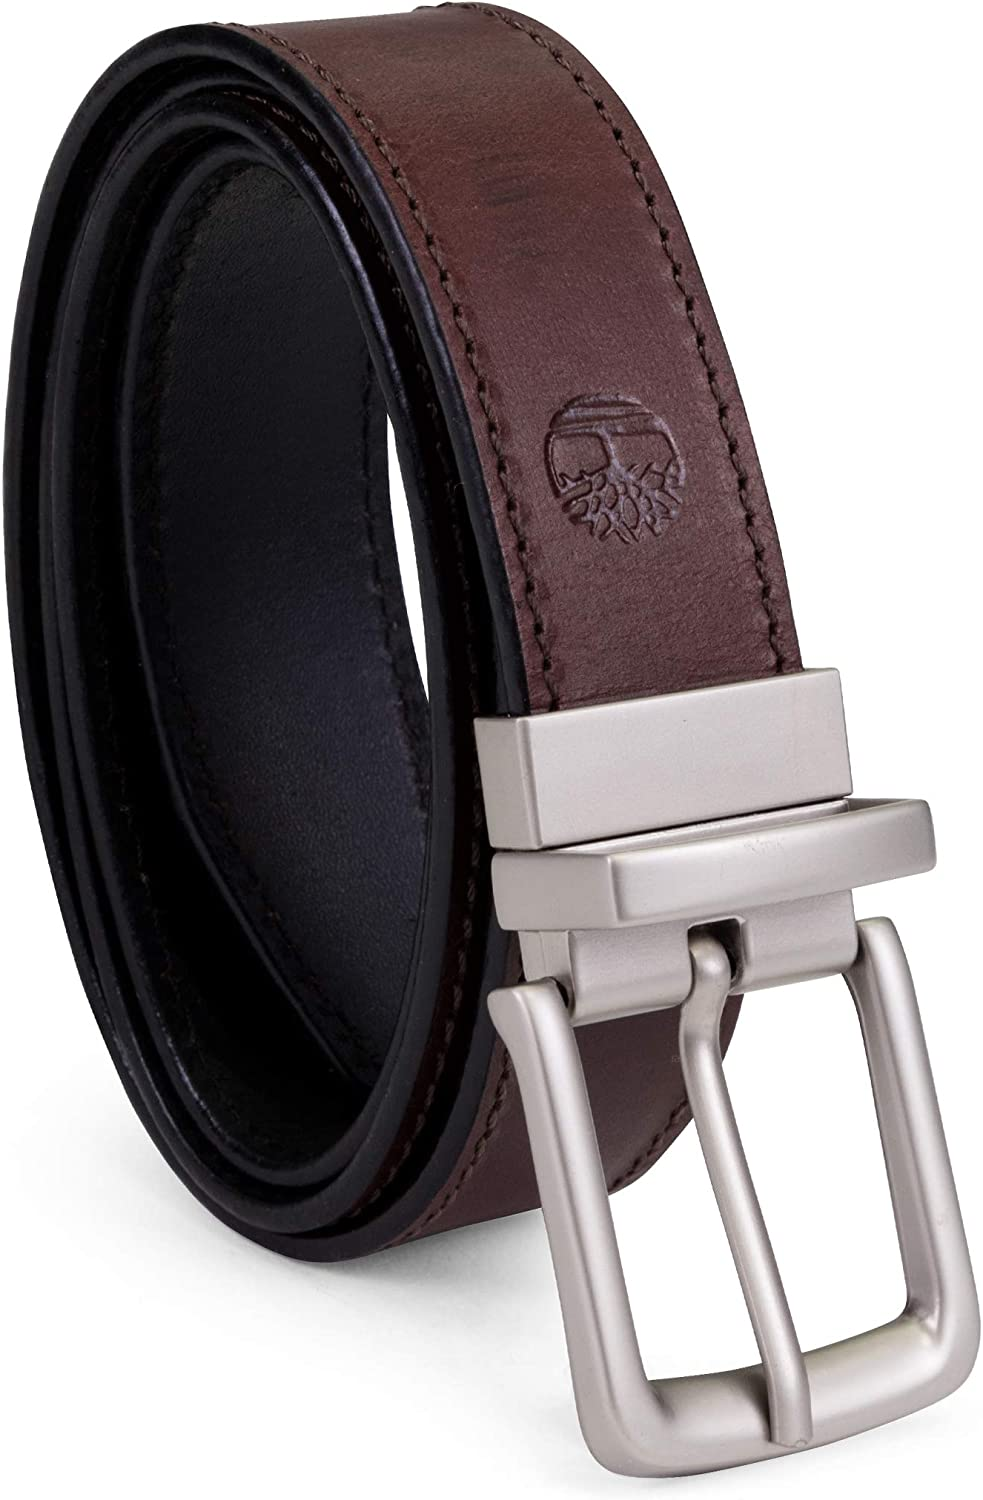 Timberland Men's Classic Leather Belt Reversible From Brown To Black